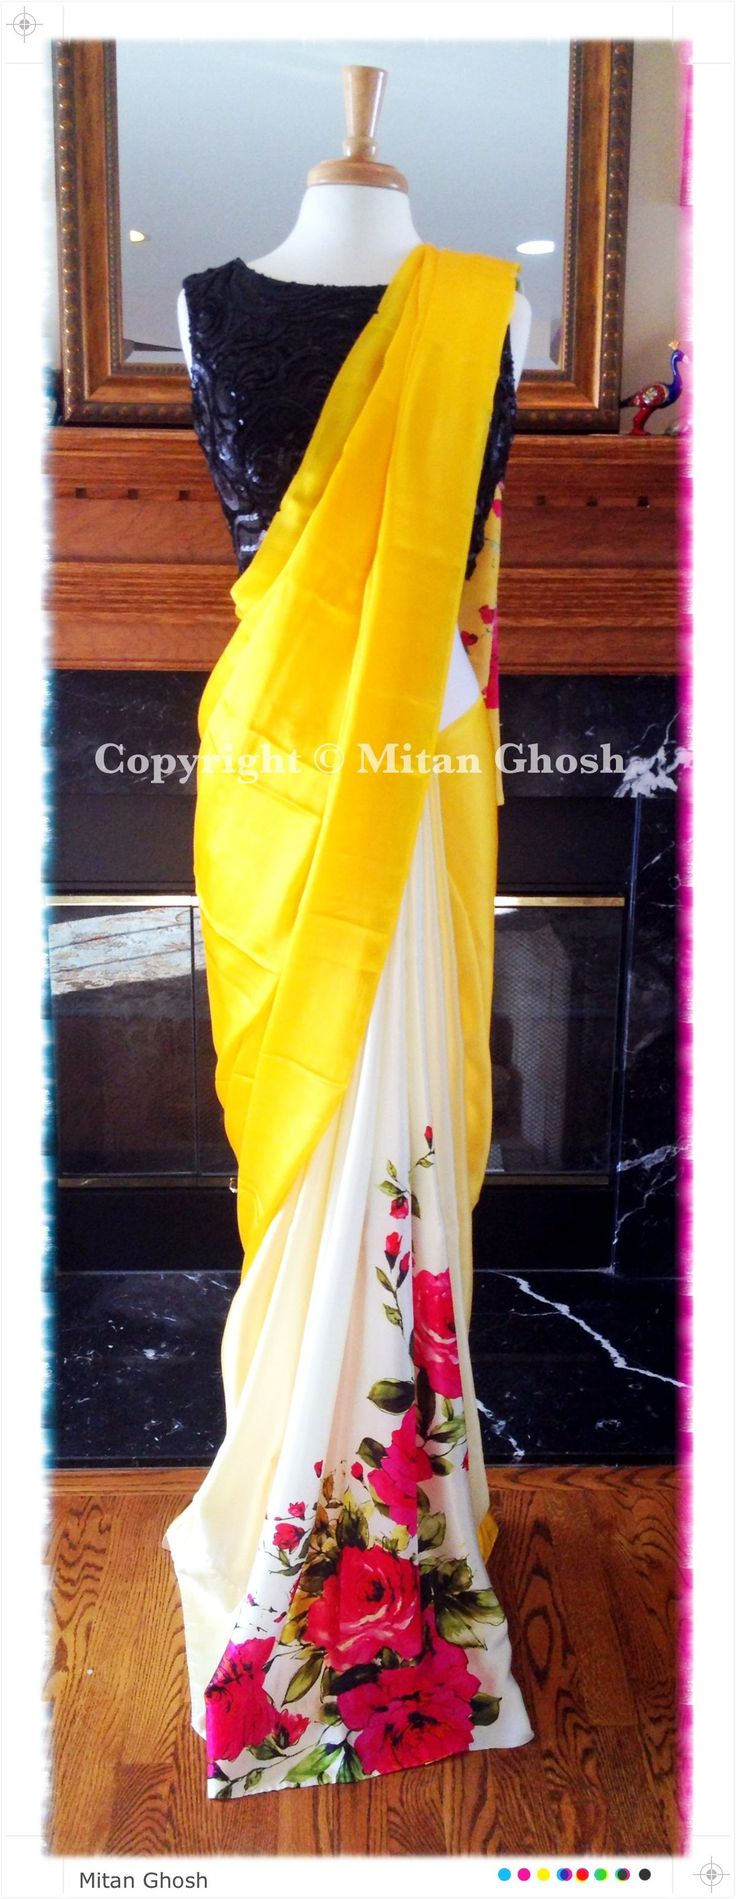 Mitan Ghosh White #Saree With Red Roses, Yellow Pallu  Black #Blouse.